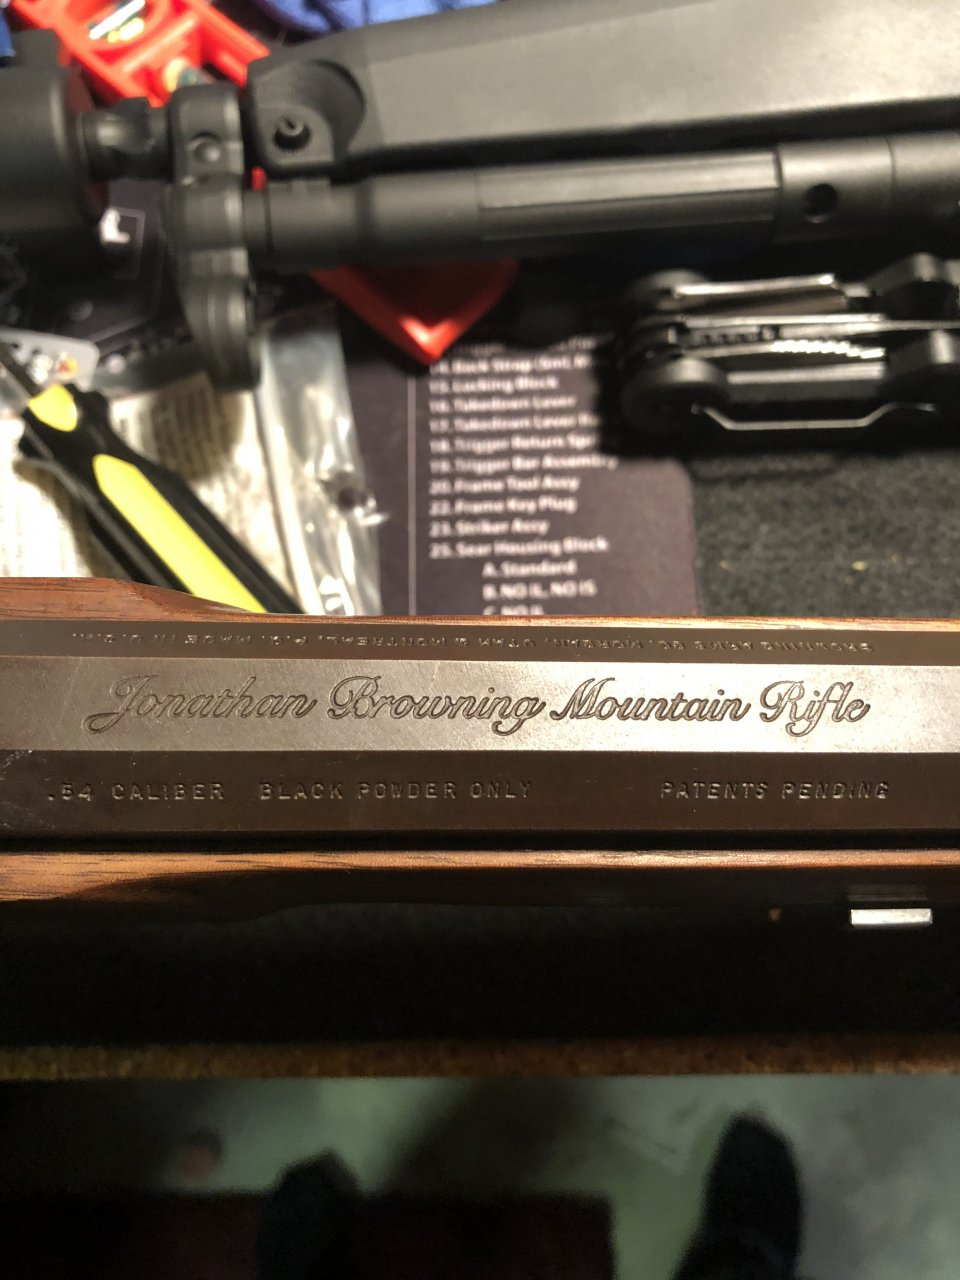 I Inherited A Jonathan Browning Mountain Rifle  I Don't Have The